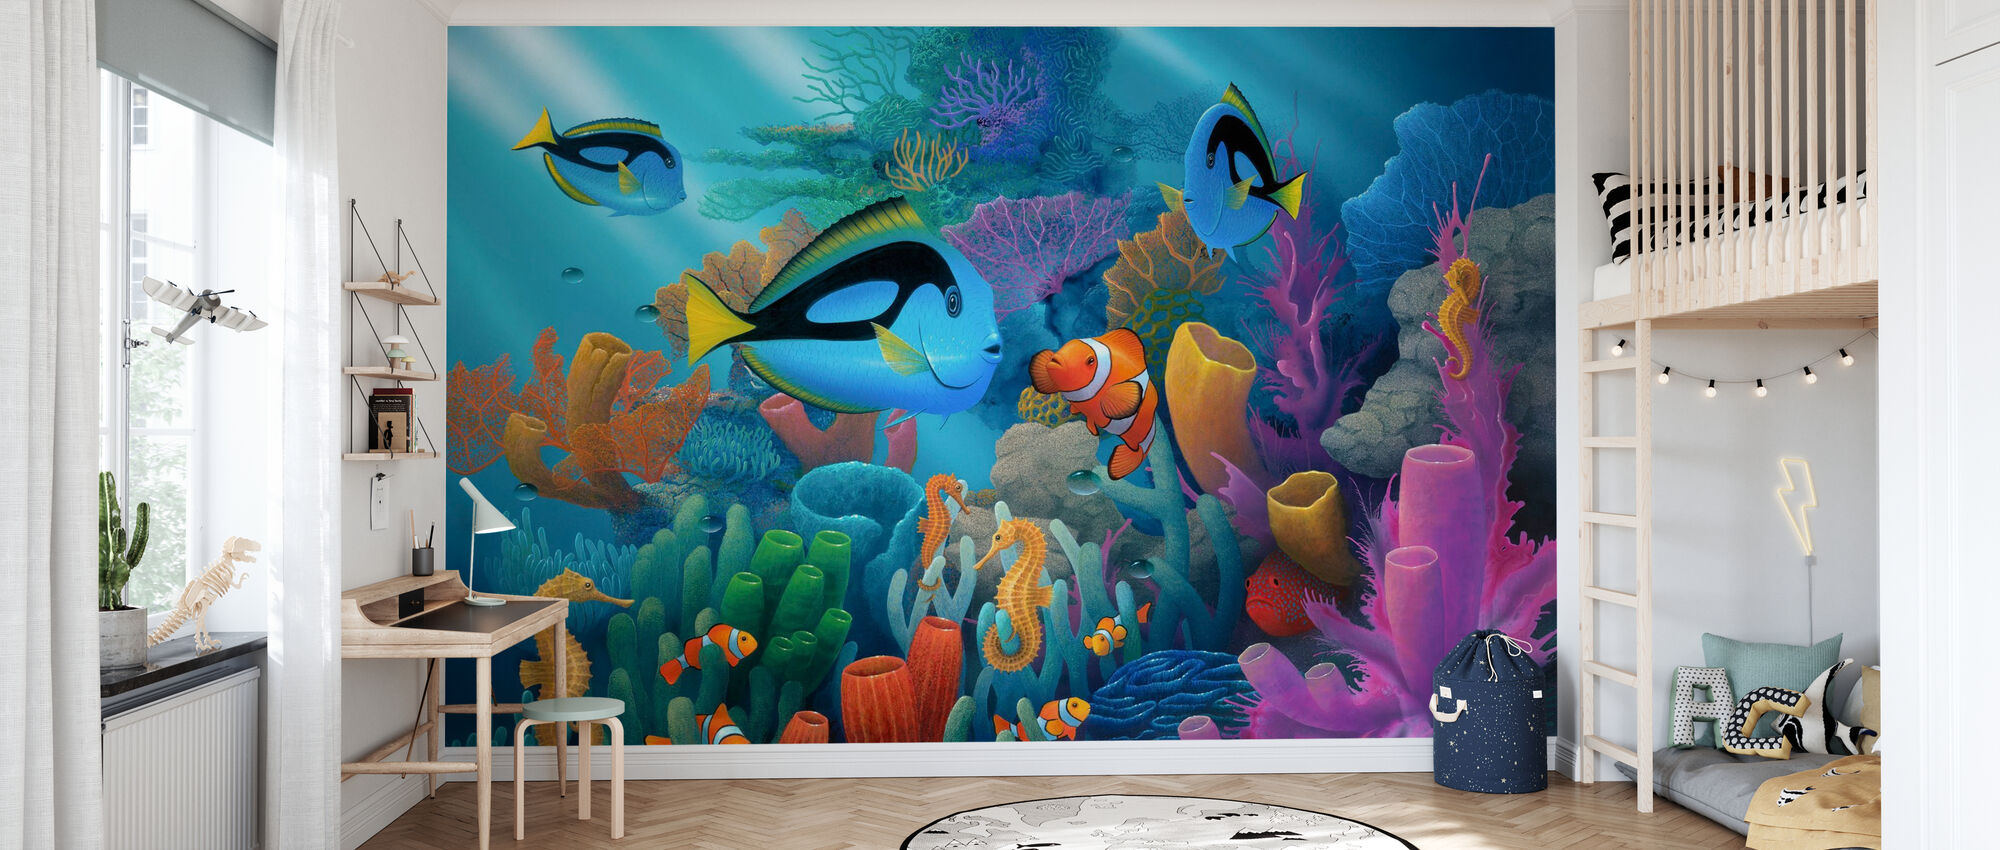 Friends of the Sea - Wallpaper - Kids Room